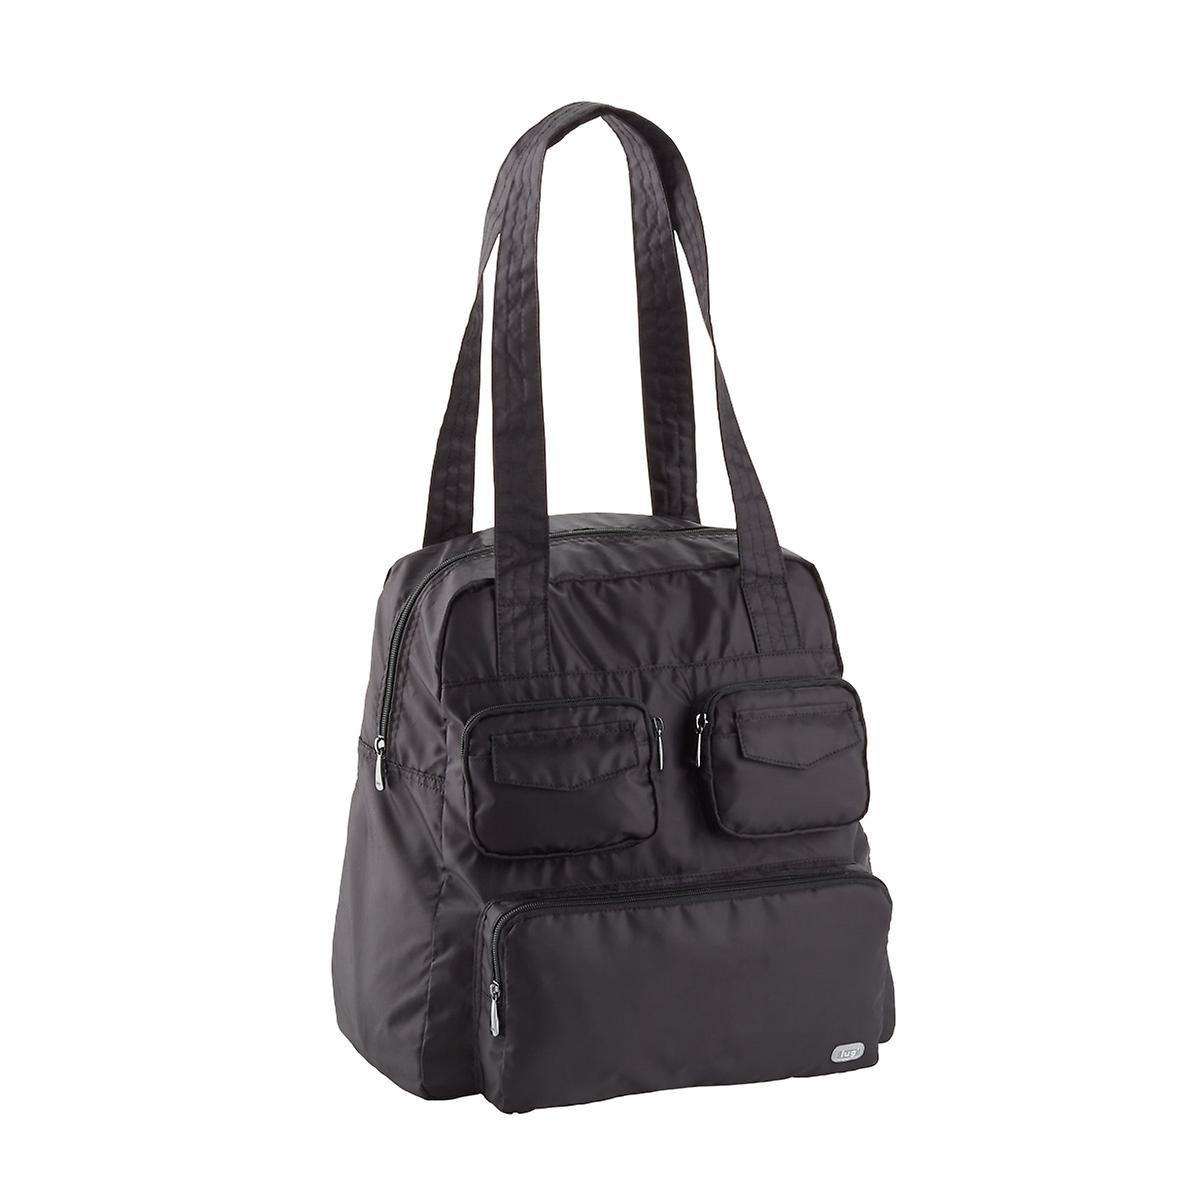 Black Collapsible Weekend Bag